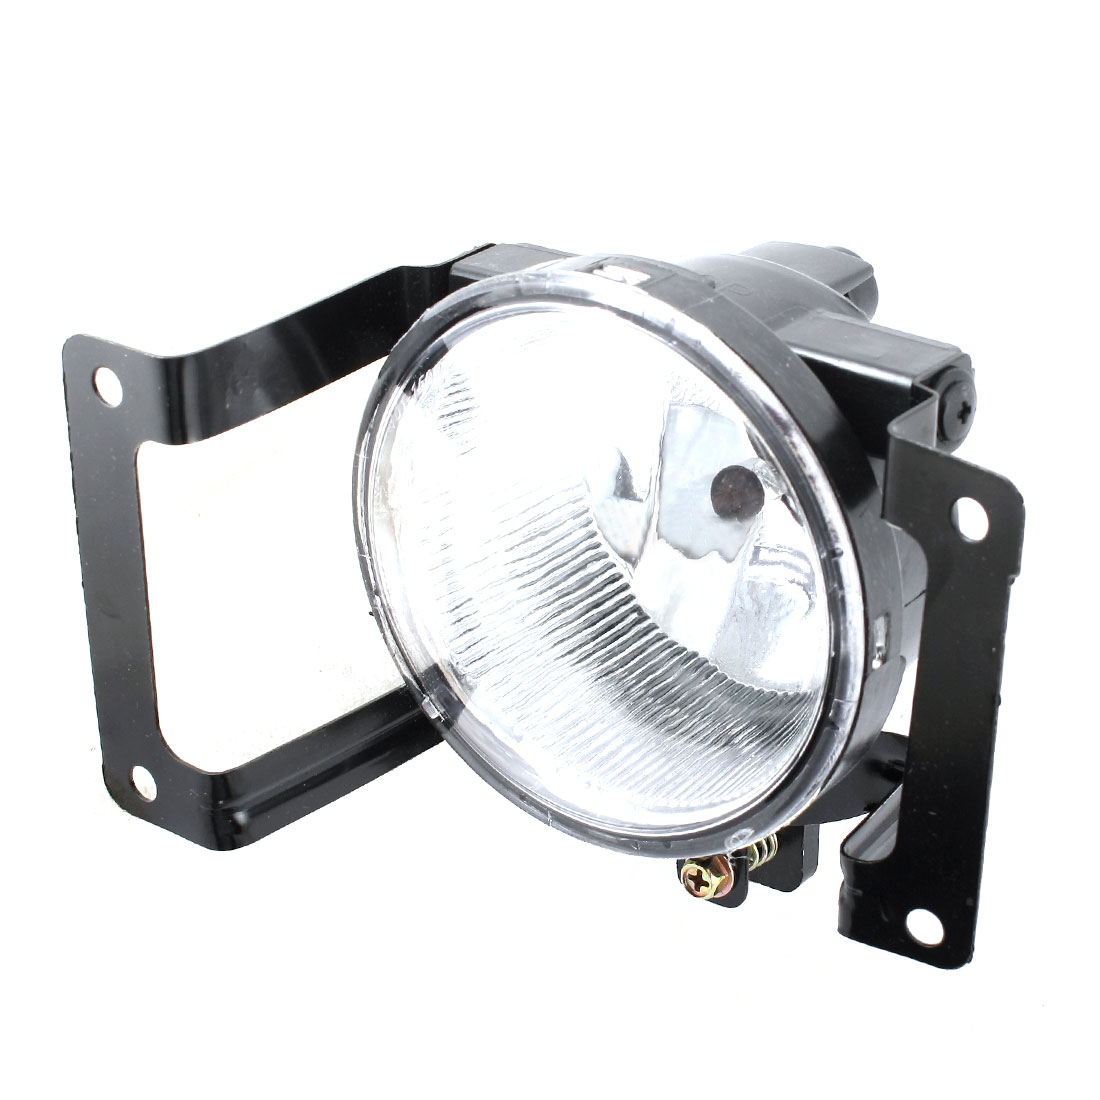 DC12V 881 27W Front Left Fog Lights Driving Lamps Warm White 92201-2E000 for Hyundai Tucson